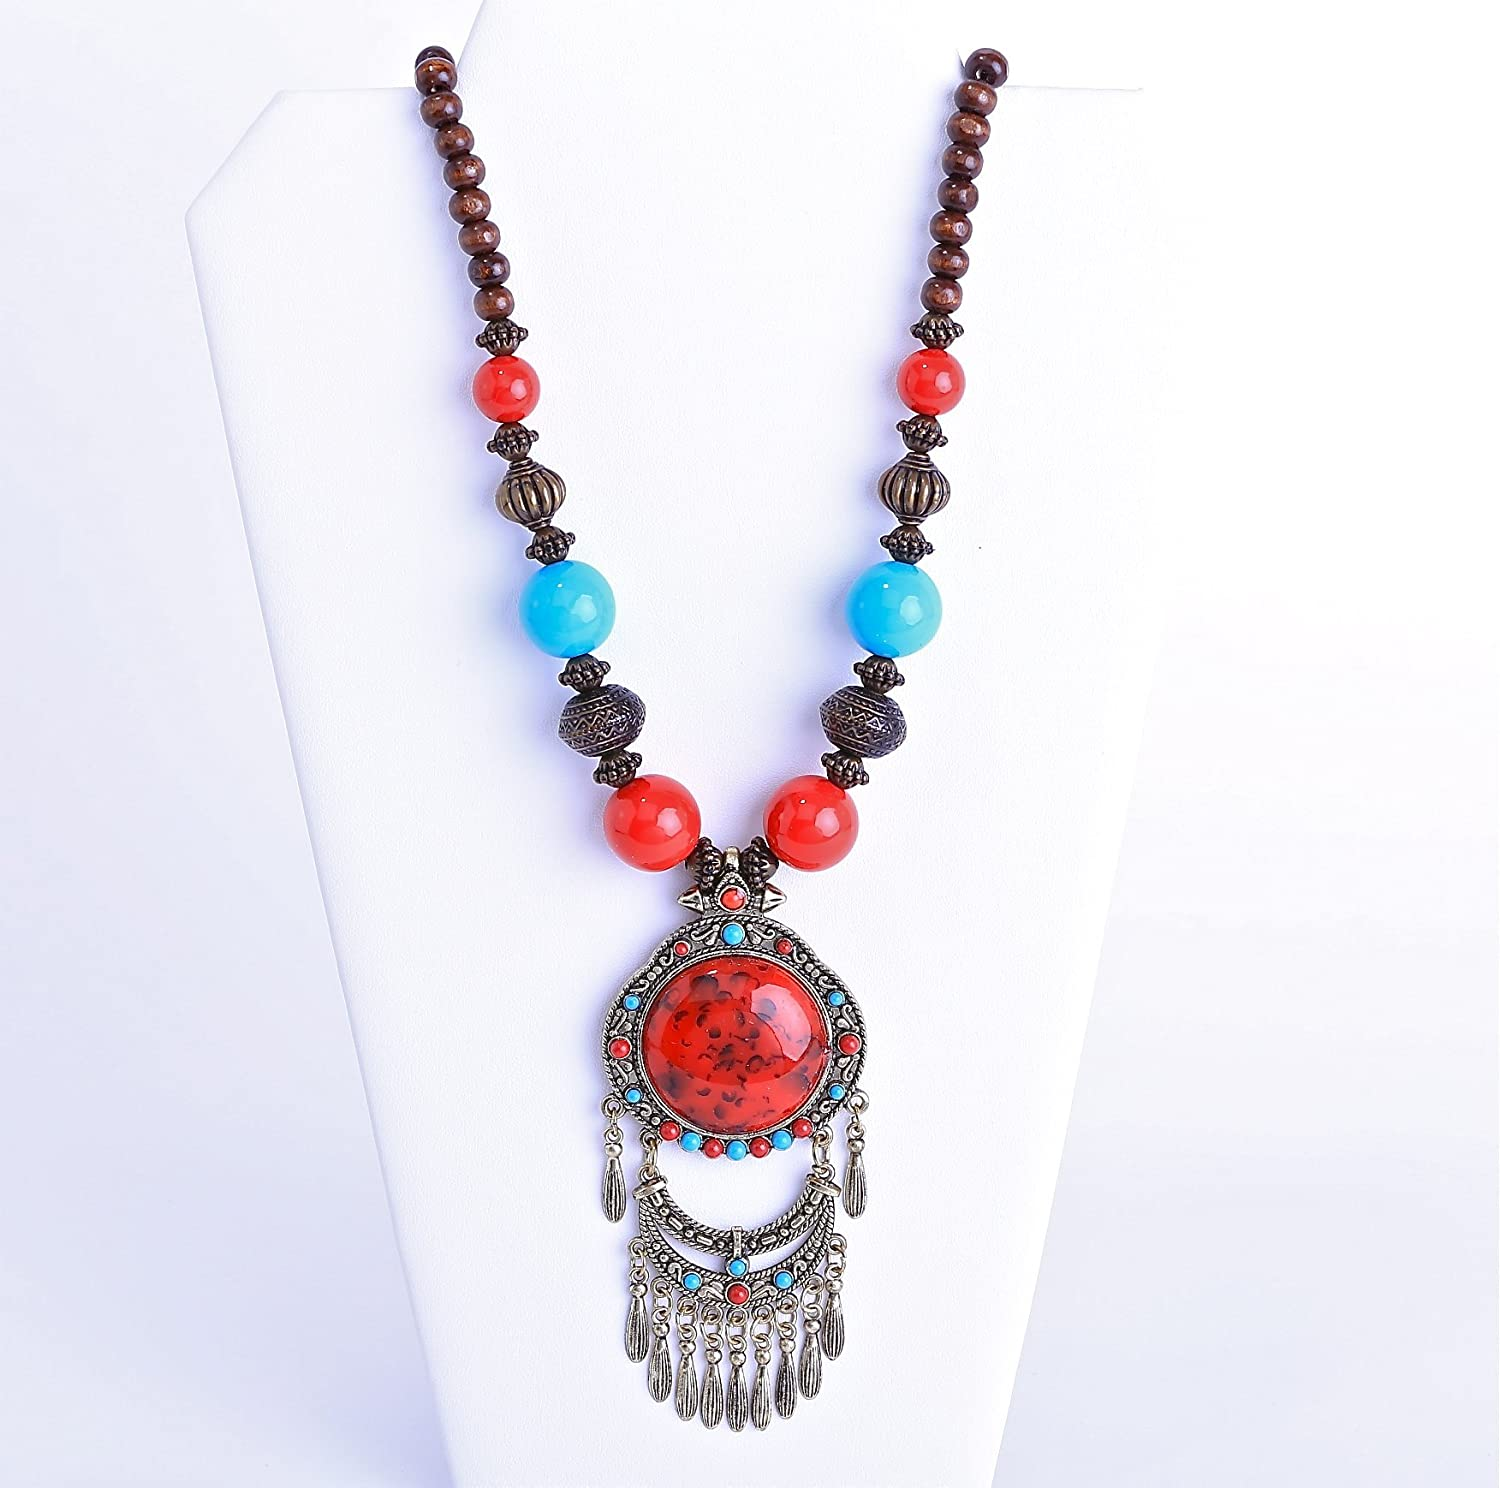 turquoise necklacereds Stone NecklacesMulti color beads NecklacesSterling Silver Beads Handmade in USA